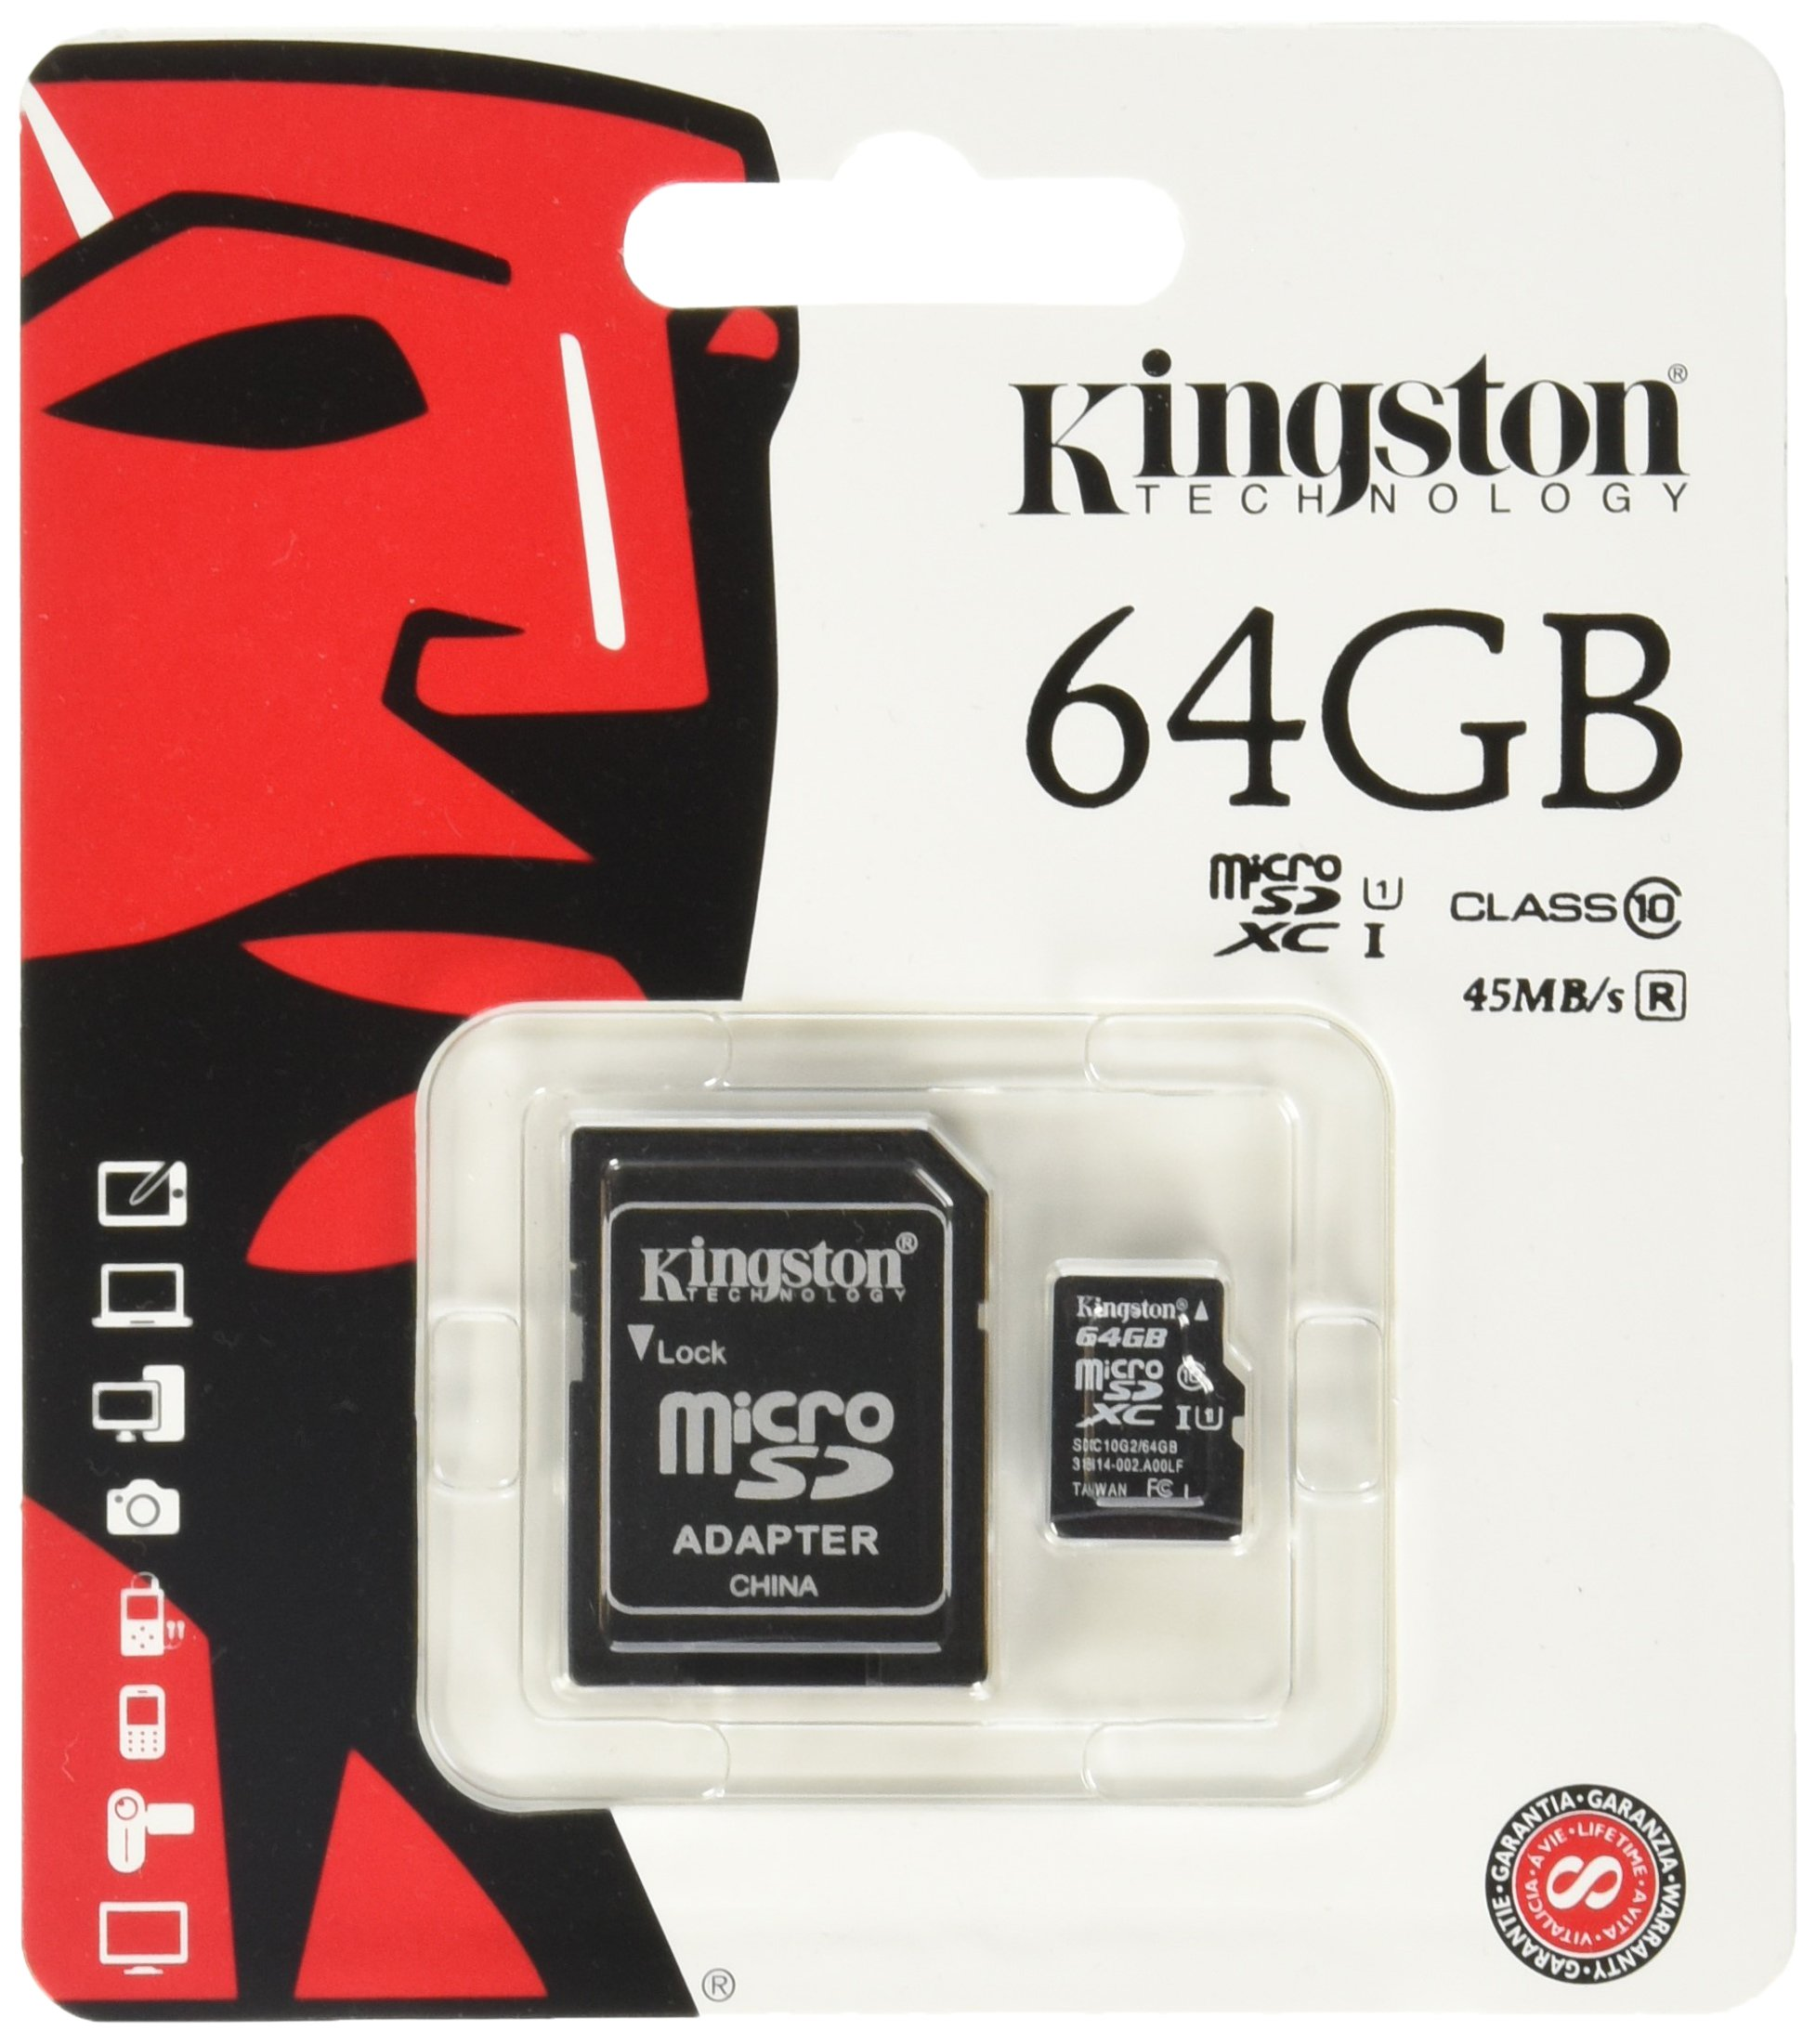 80MBs Works with Kingston Professional Kingston 64GB for Celkon Campus Crown Q40 MicroSDXC Card Custom Verified by SanFlash.